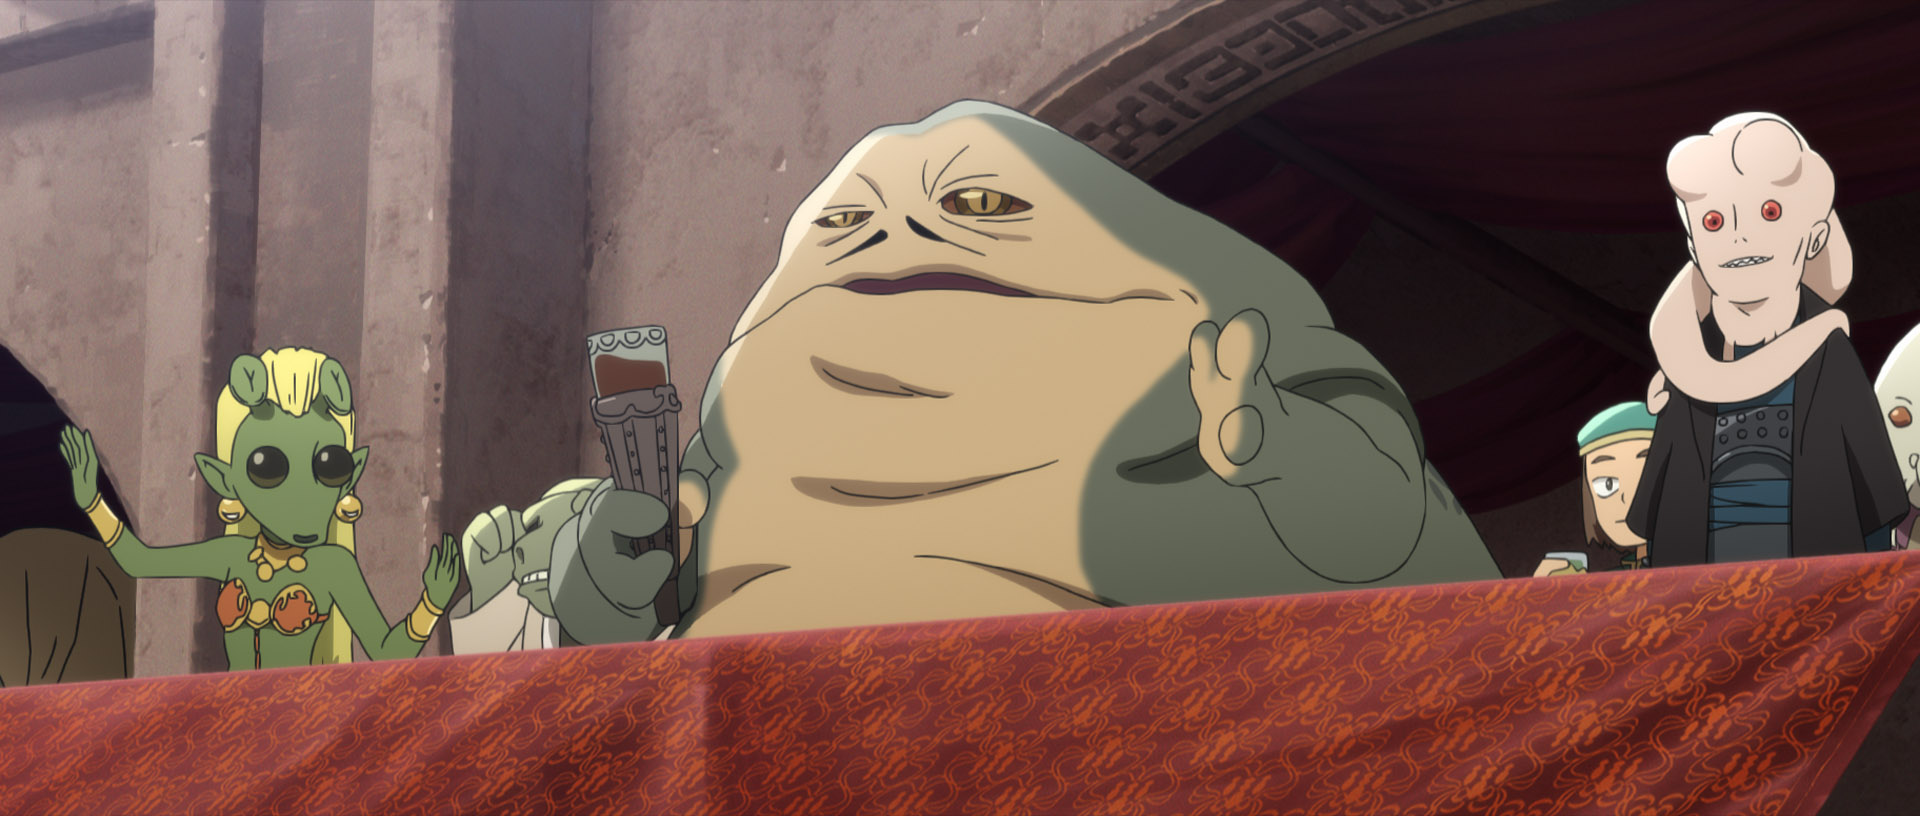 Jabba in Star Wars: Visions